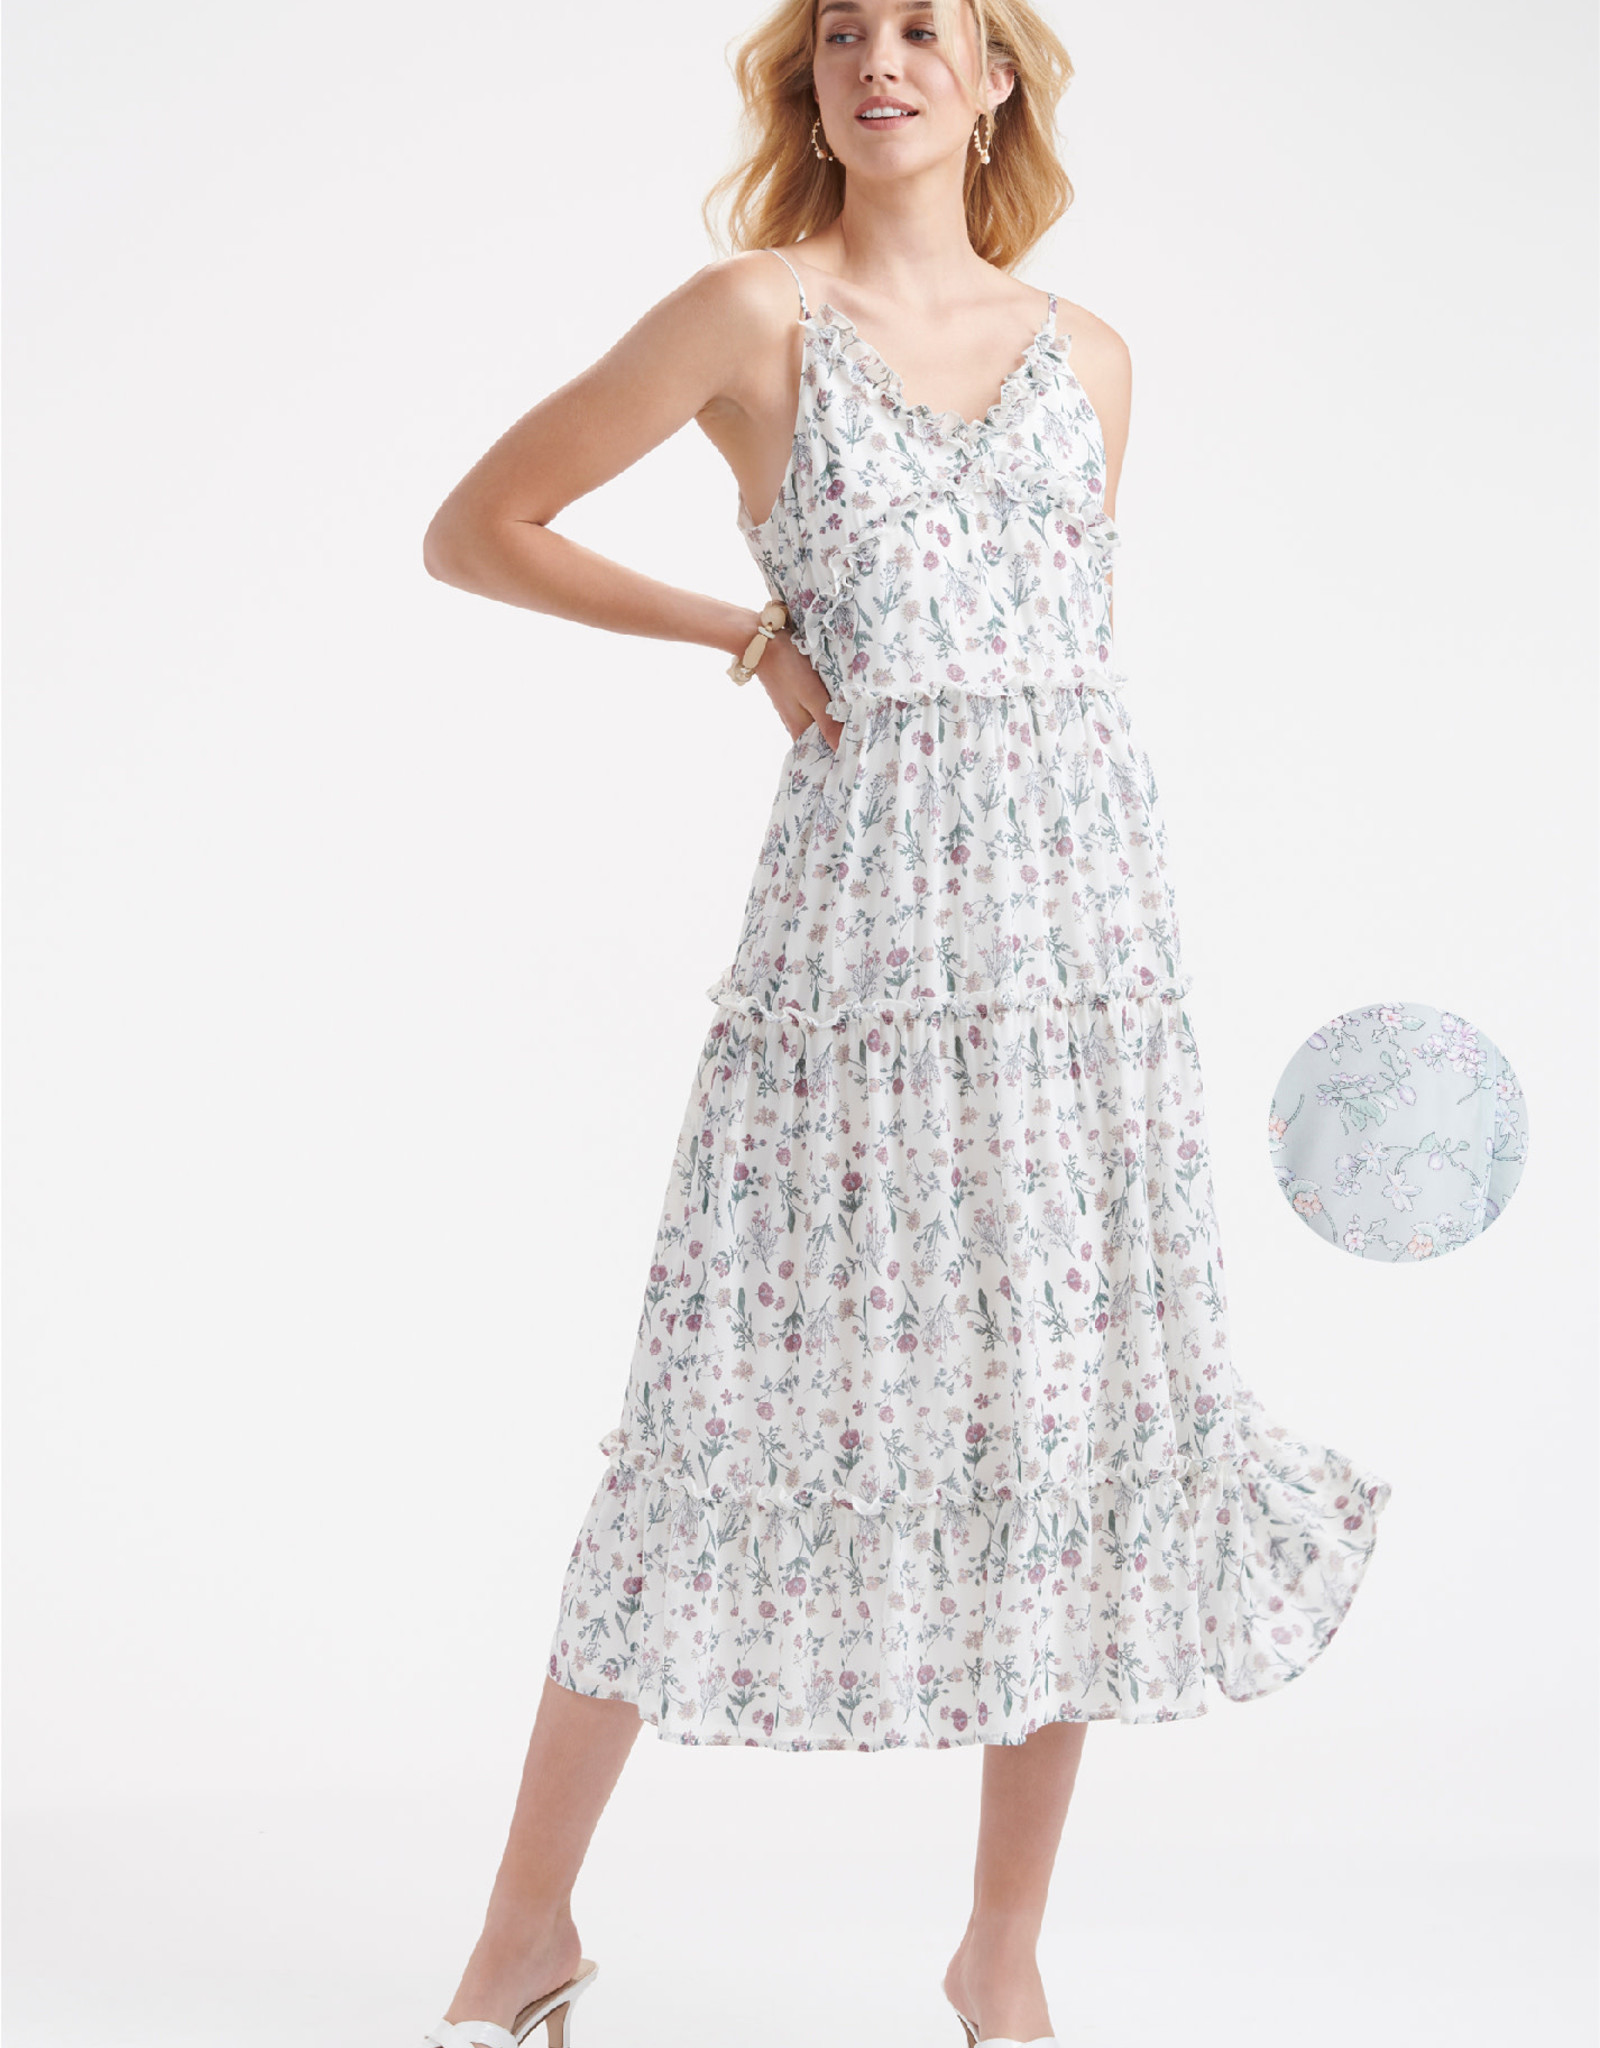 Charlie Paige CP - Floral Print Dress (2 Colors)